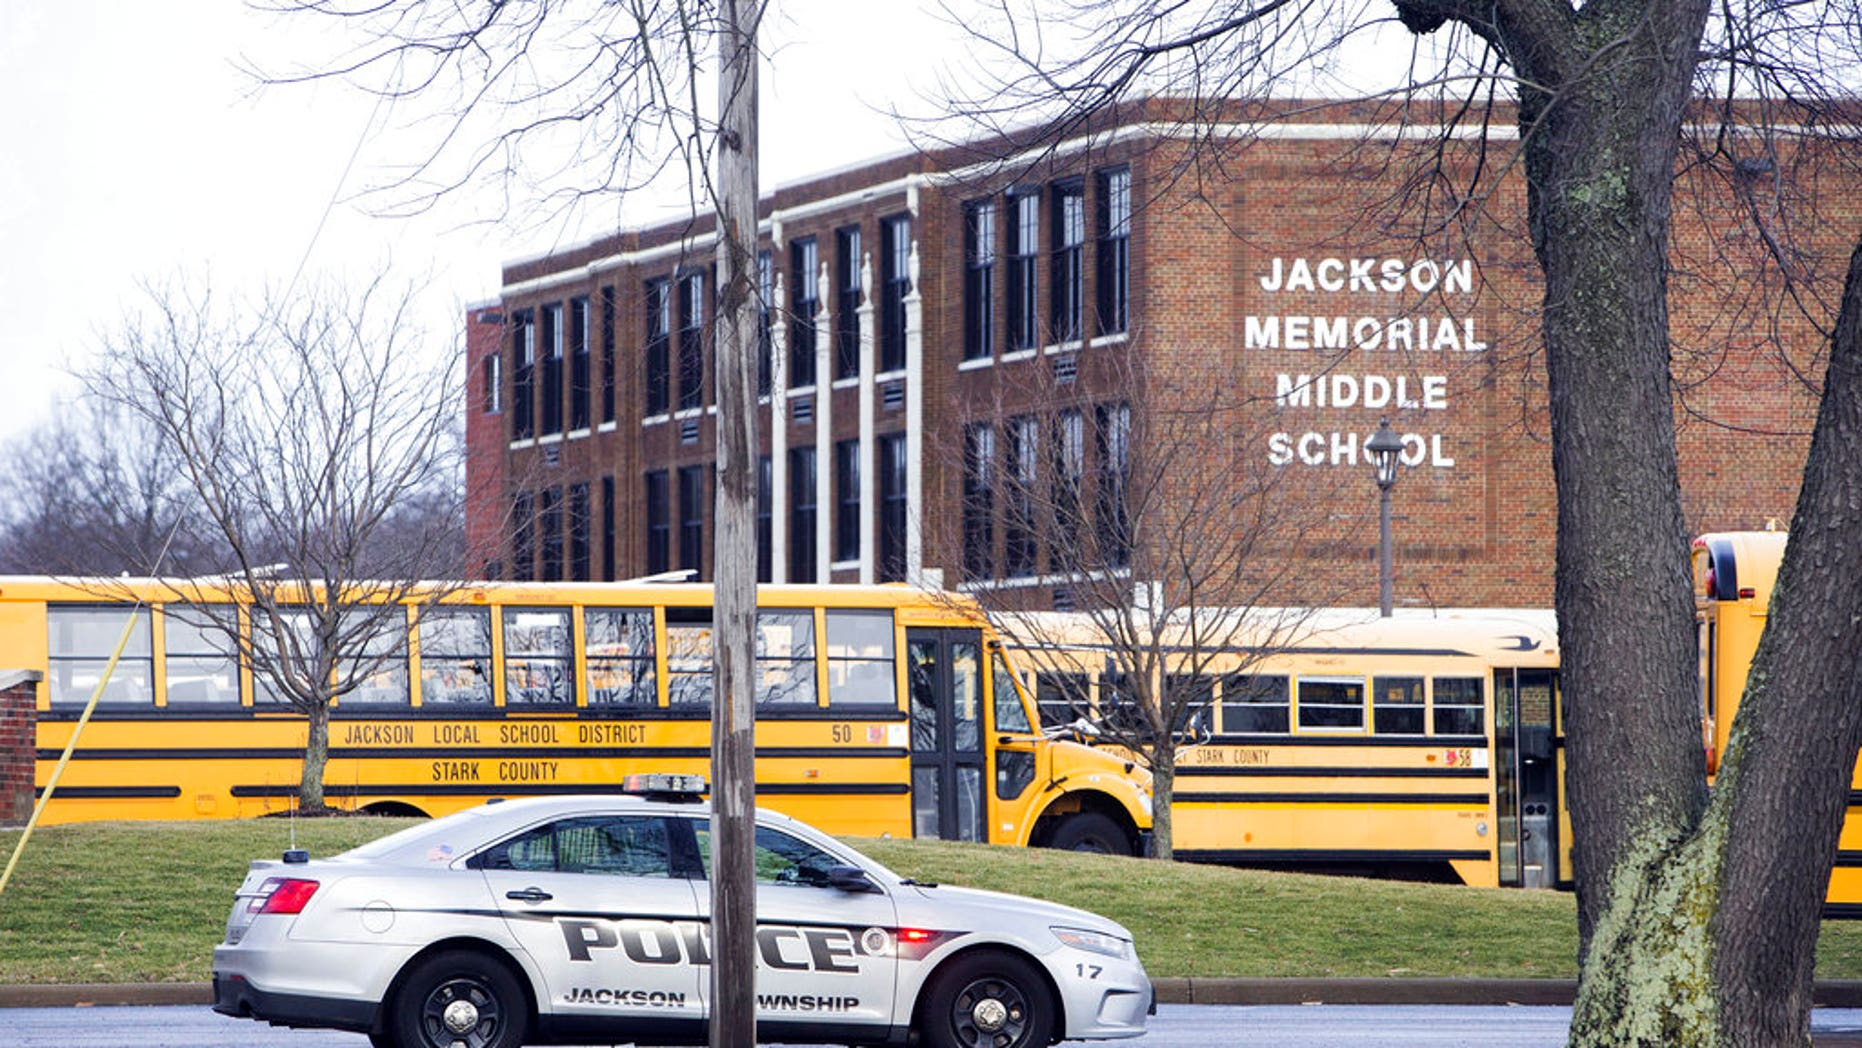 The Ohio middle school student who suffered an apparent self-inflicted gunshot wound on Tuesday has died, officials said.